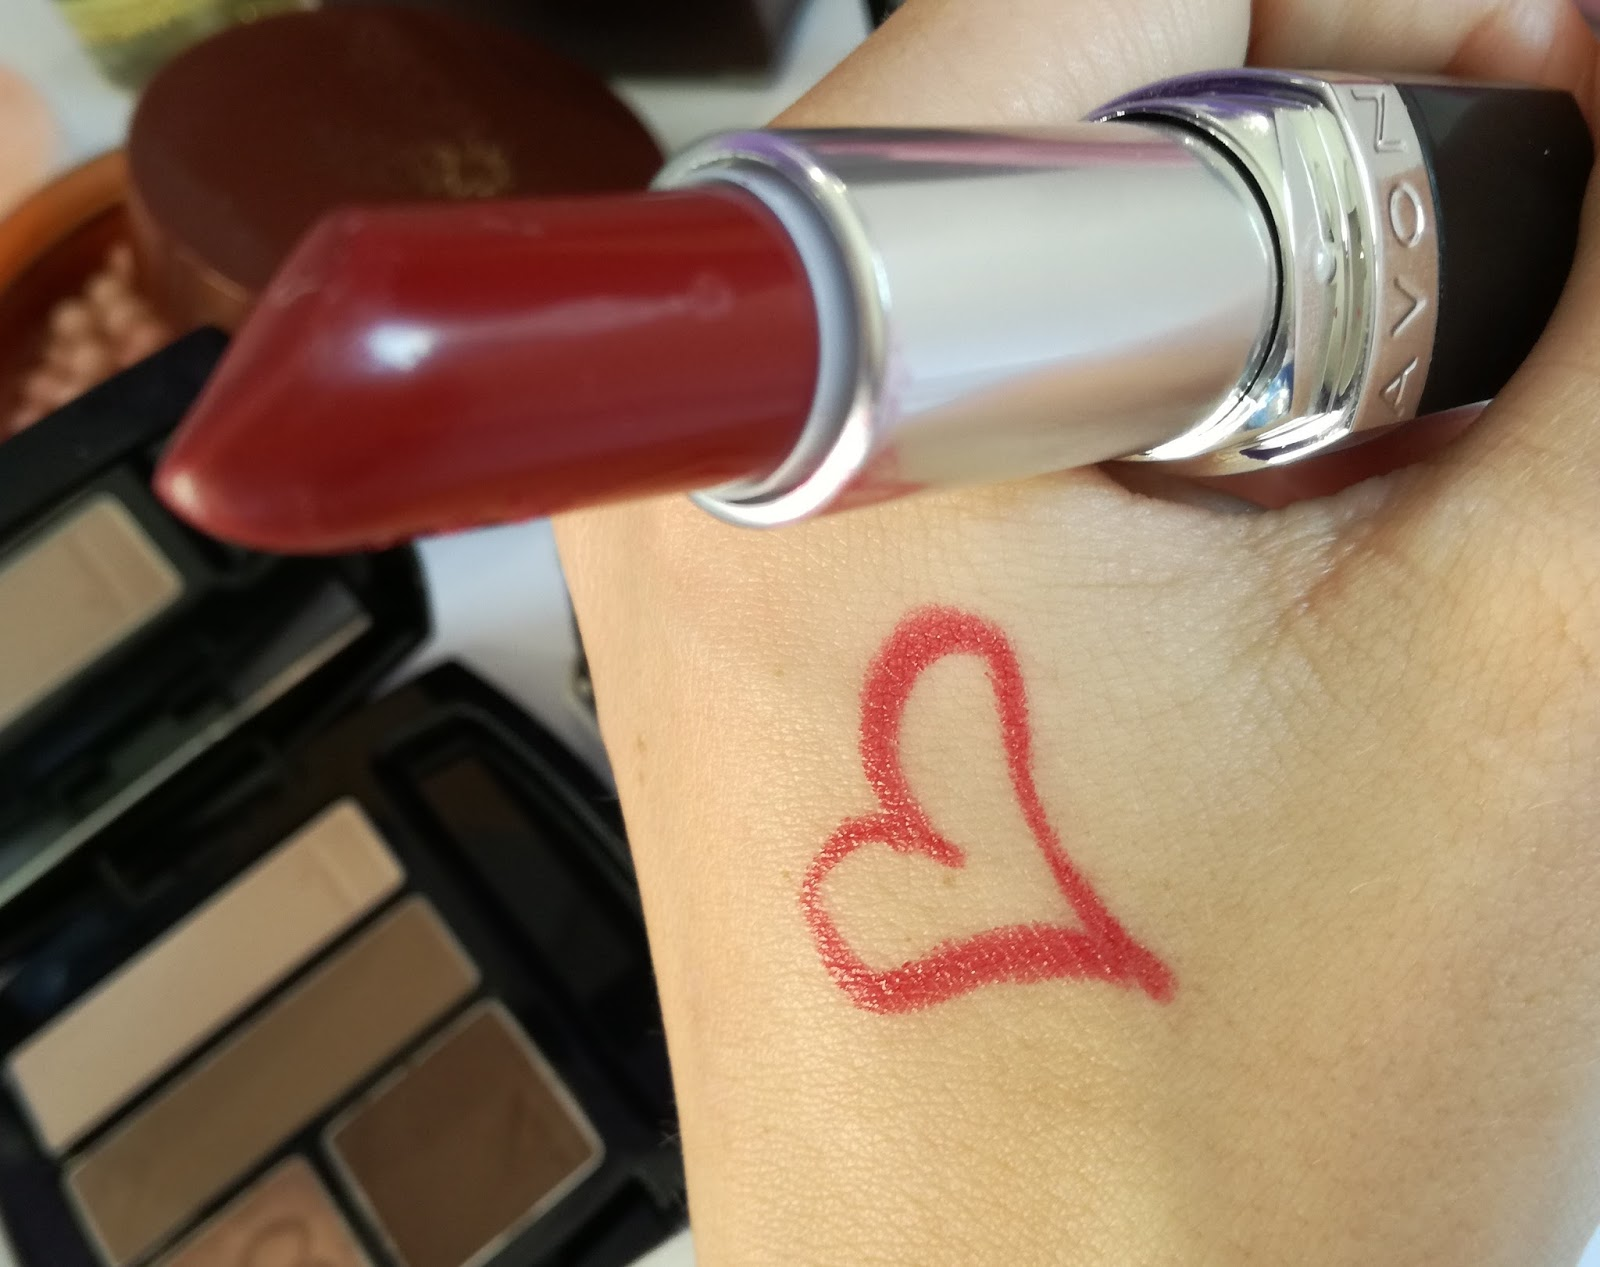 Avon-True-Colour-Perfect-Reds-Lipstick-Scarlet-Siren-swatch